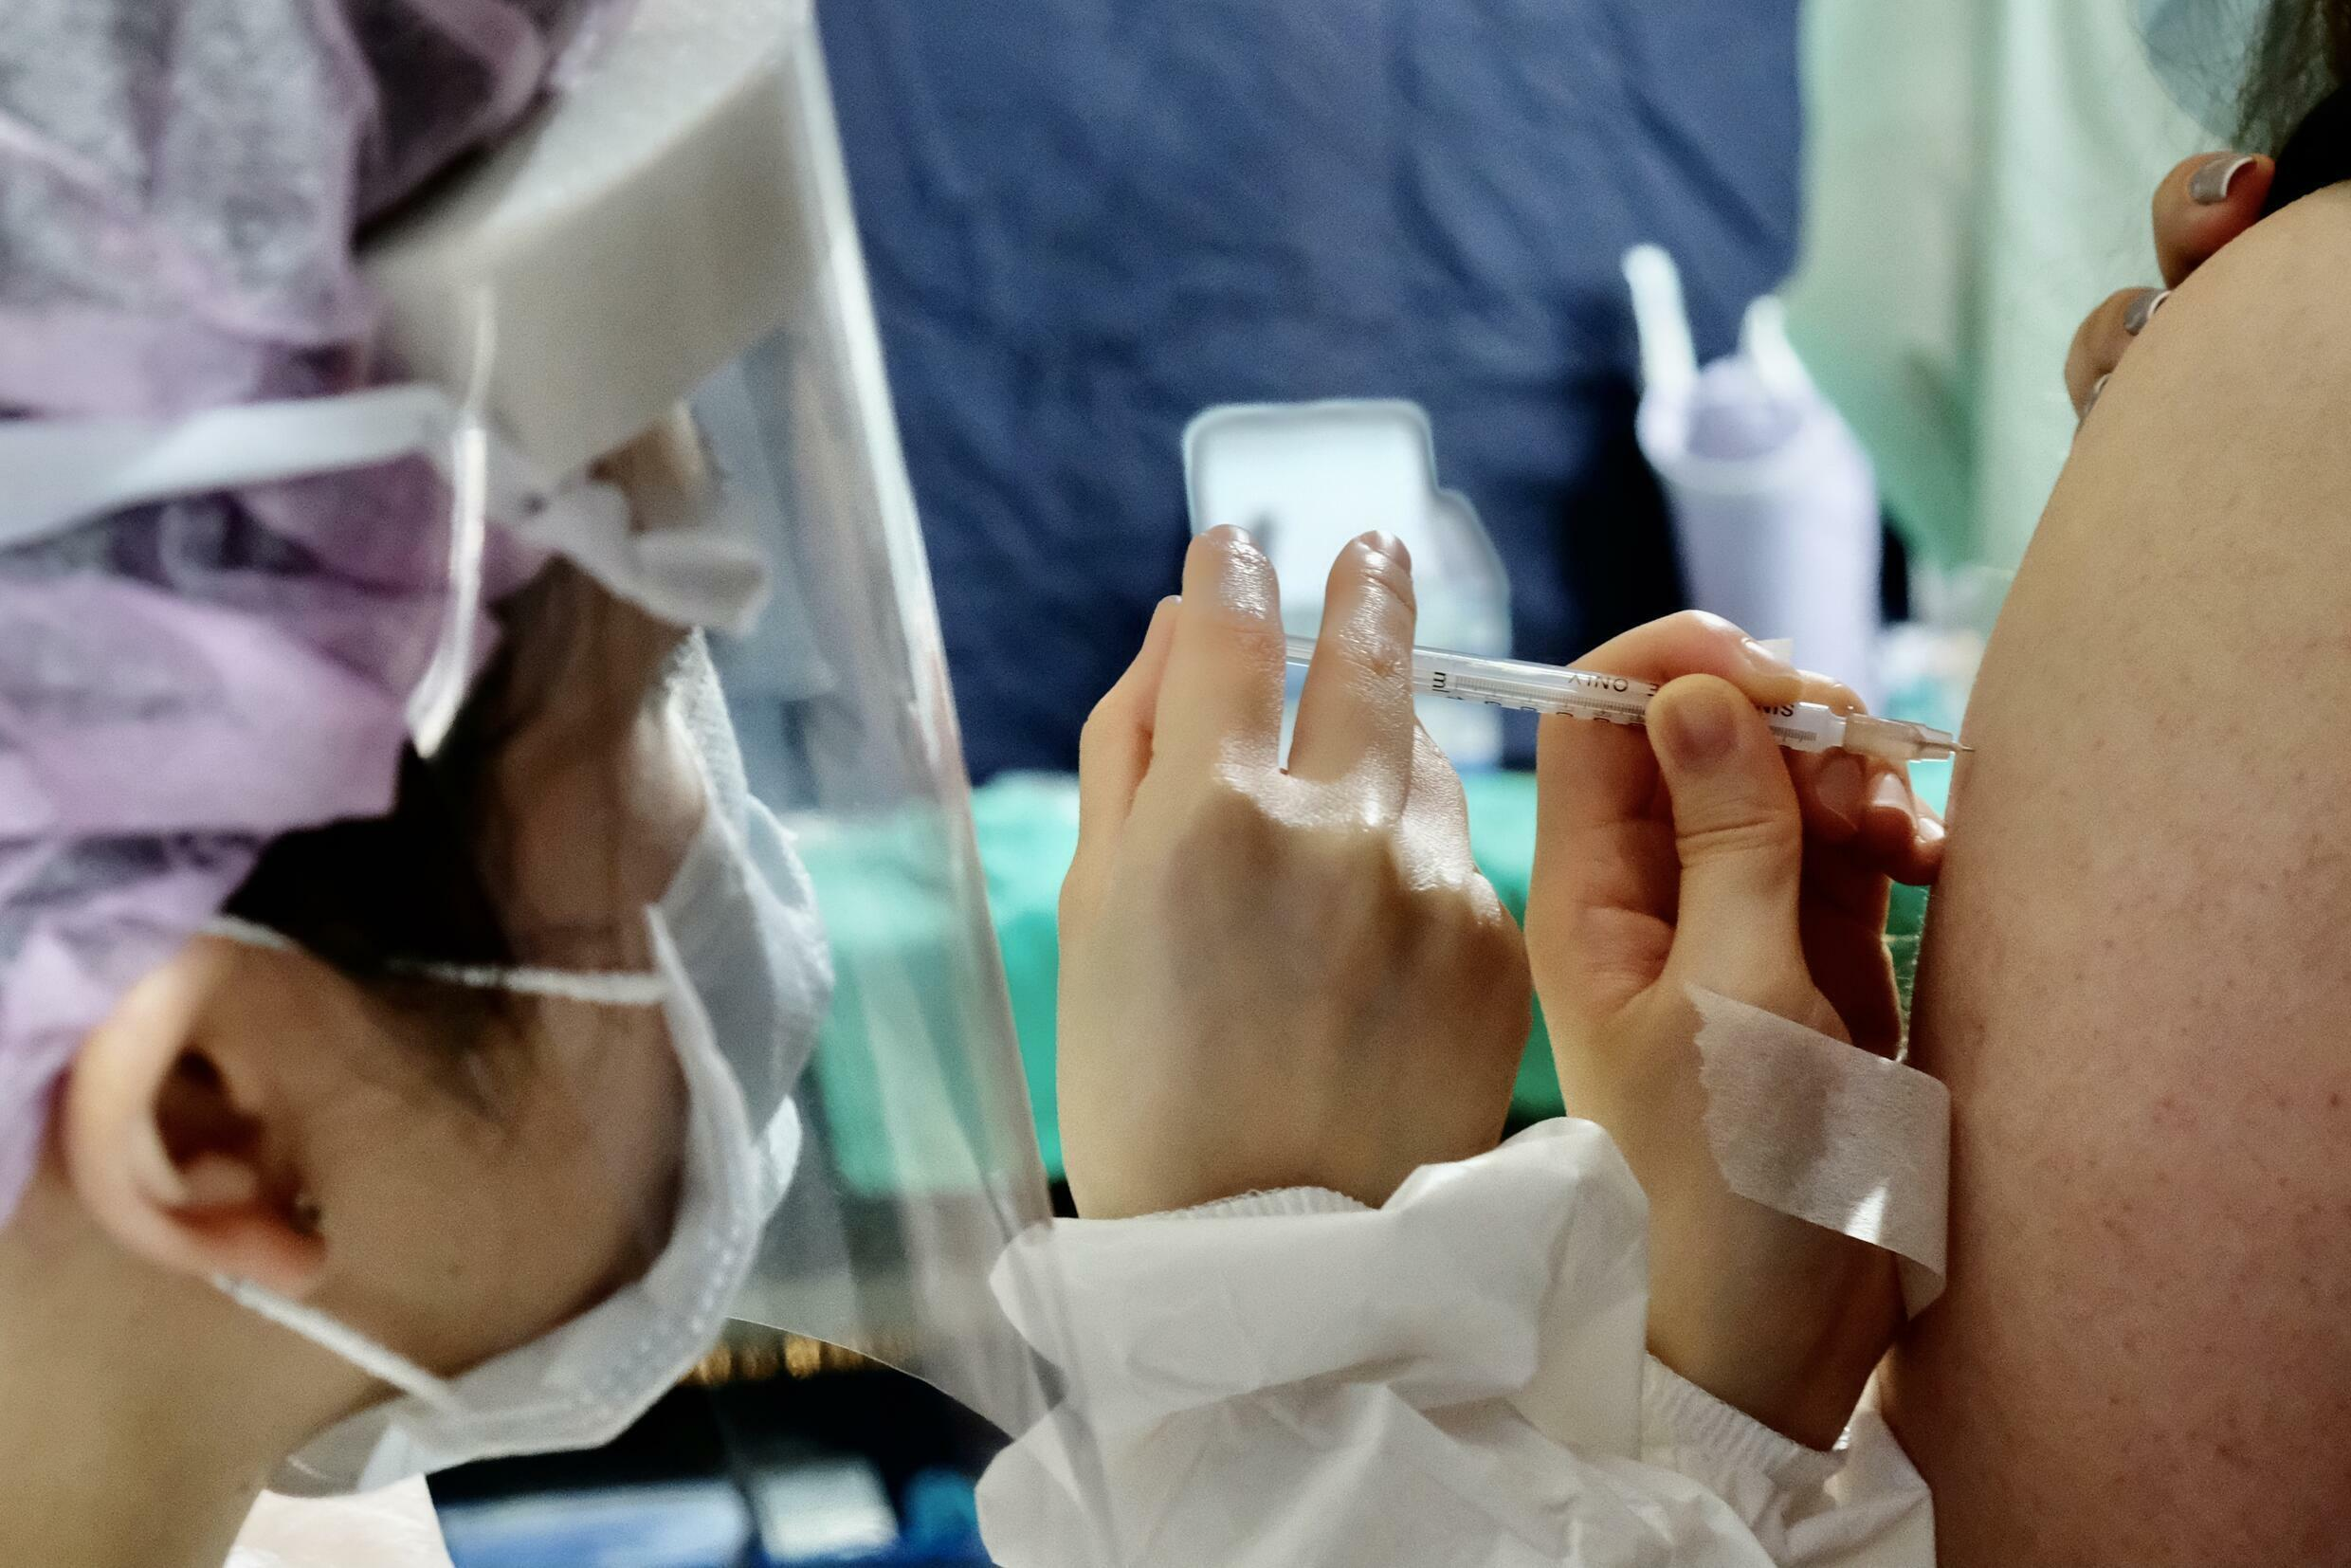 Taiwan has been struggling to procure enough coronavirus vaccines for its population